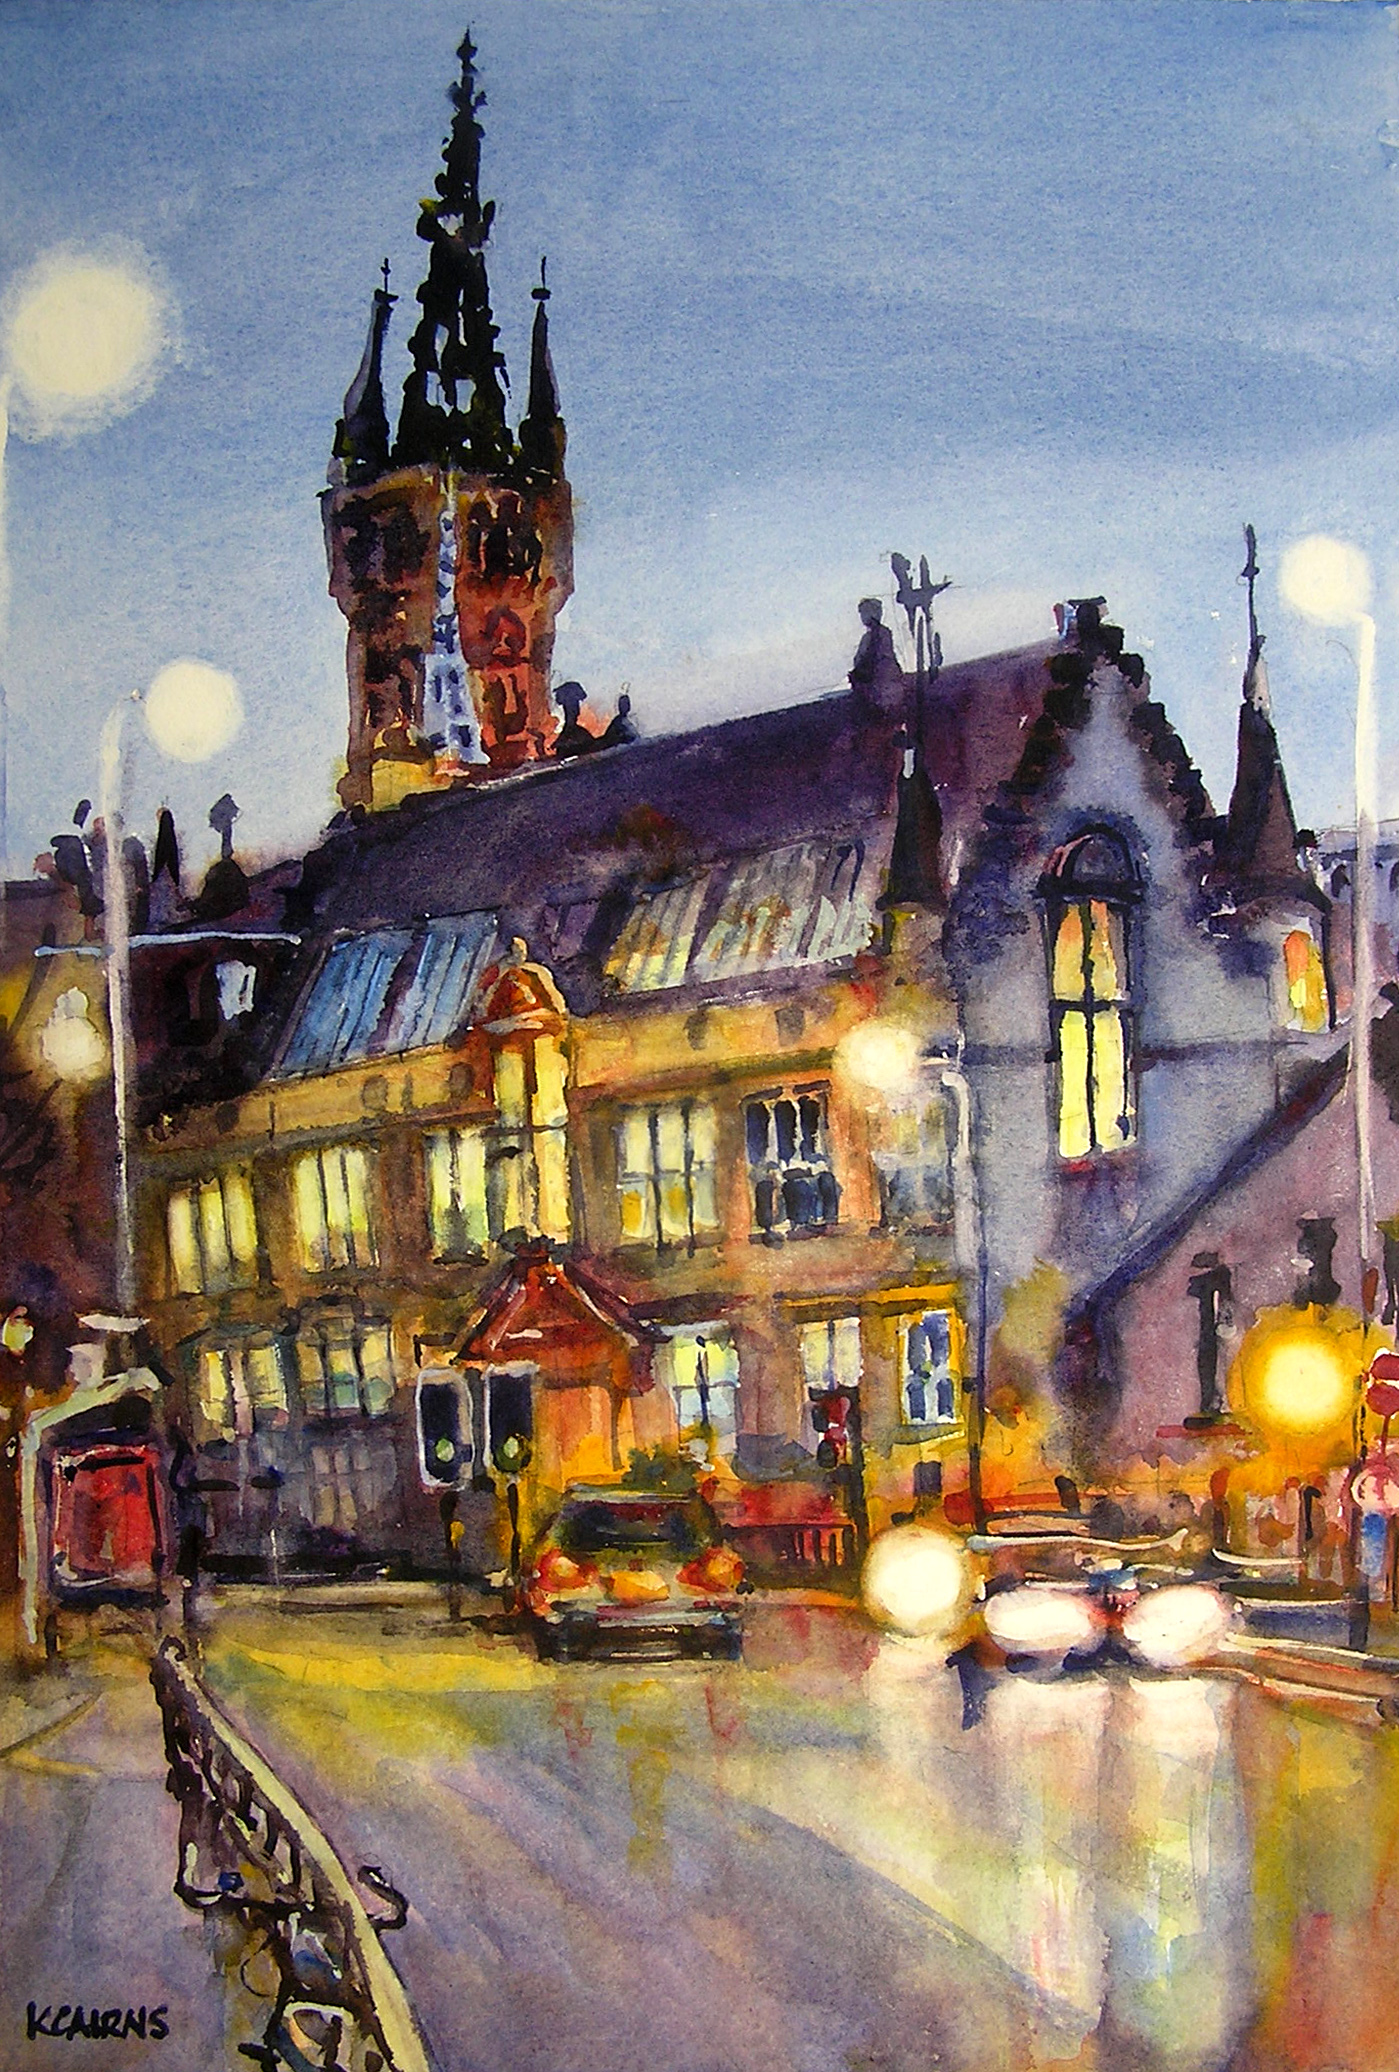 'Gothic Spires and Streetlights, University Avenue' by artist Karen Cairns